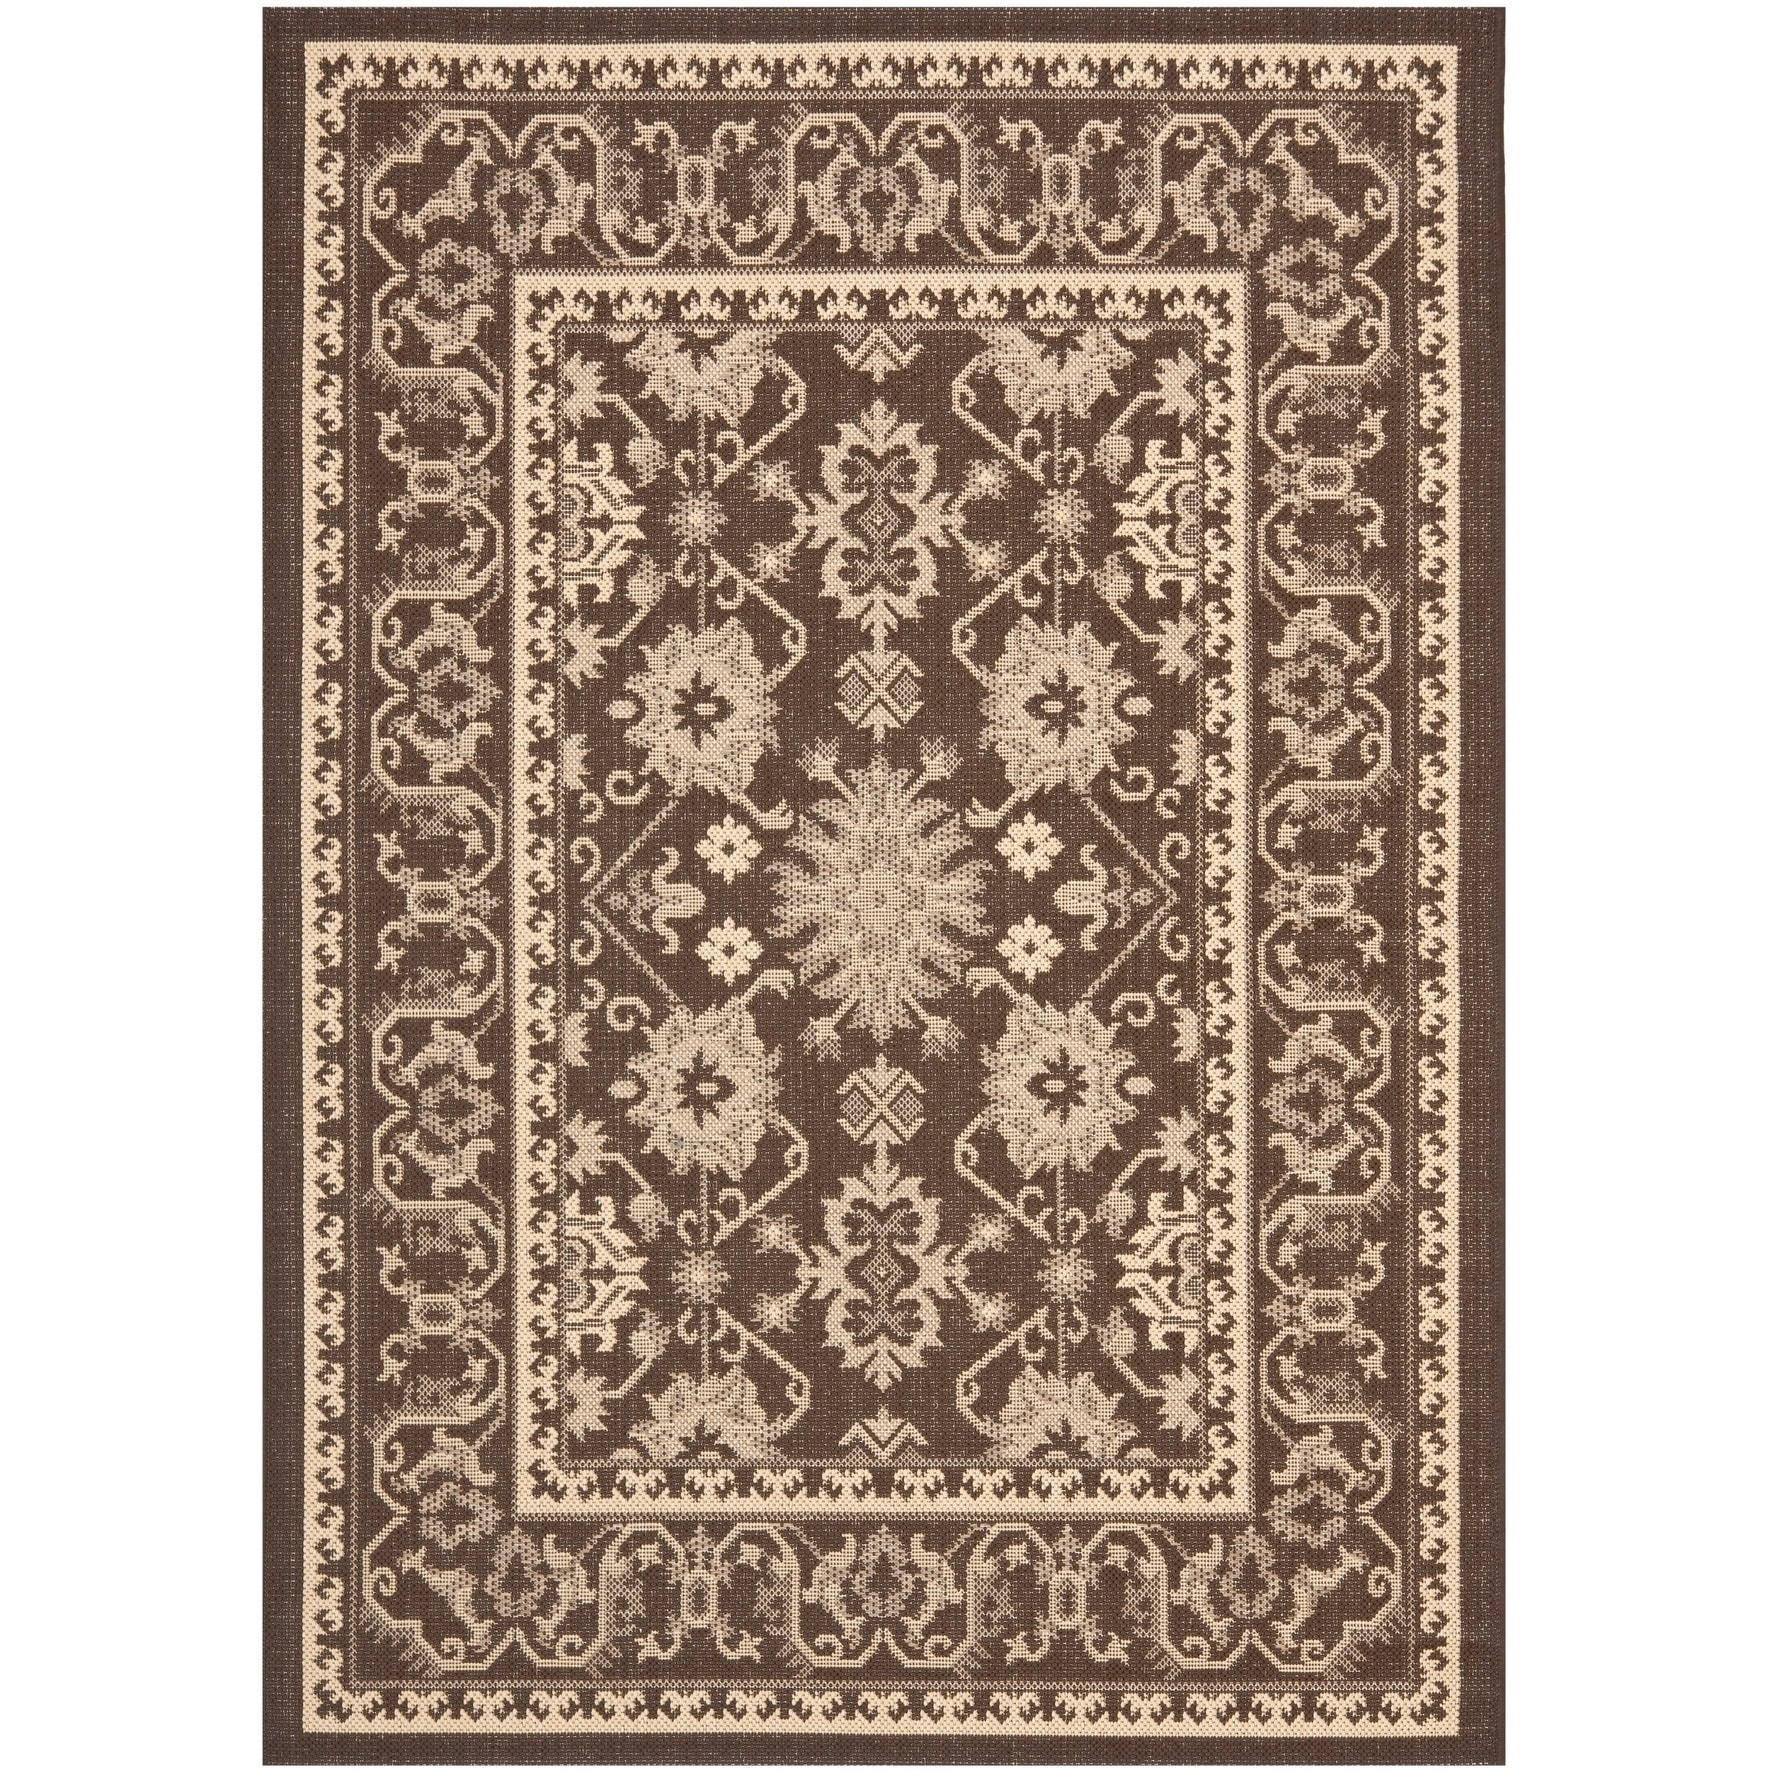 Safavieh Courtyard Safavieh Courtyard Charm Chocolate Cream Indoor Outdoor Rug 4 X 5 7